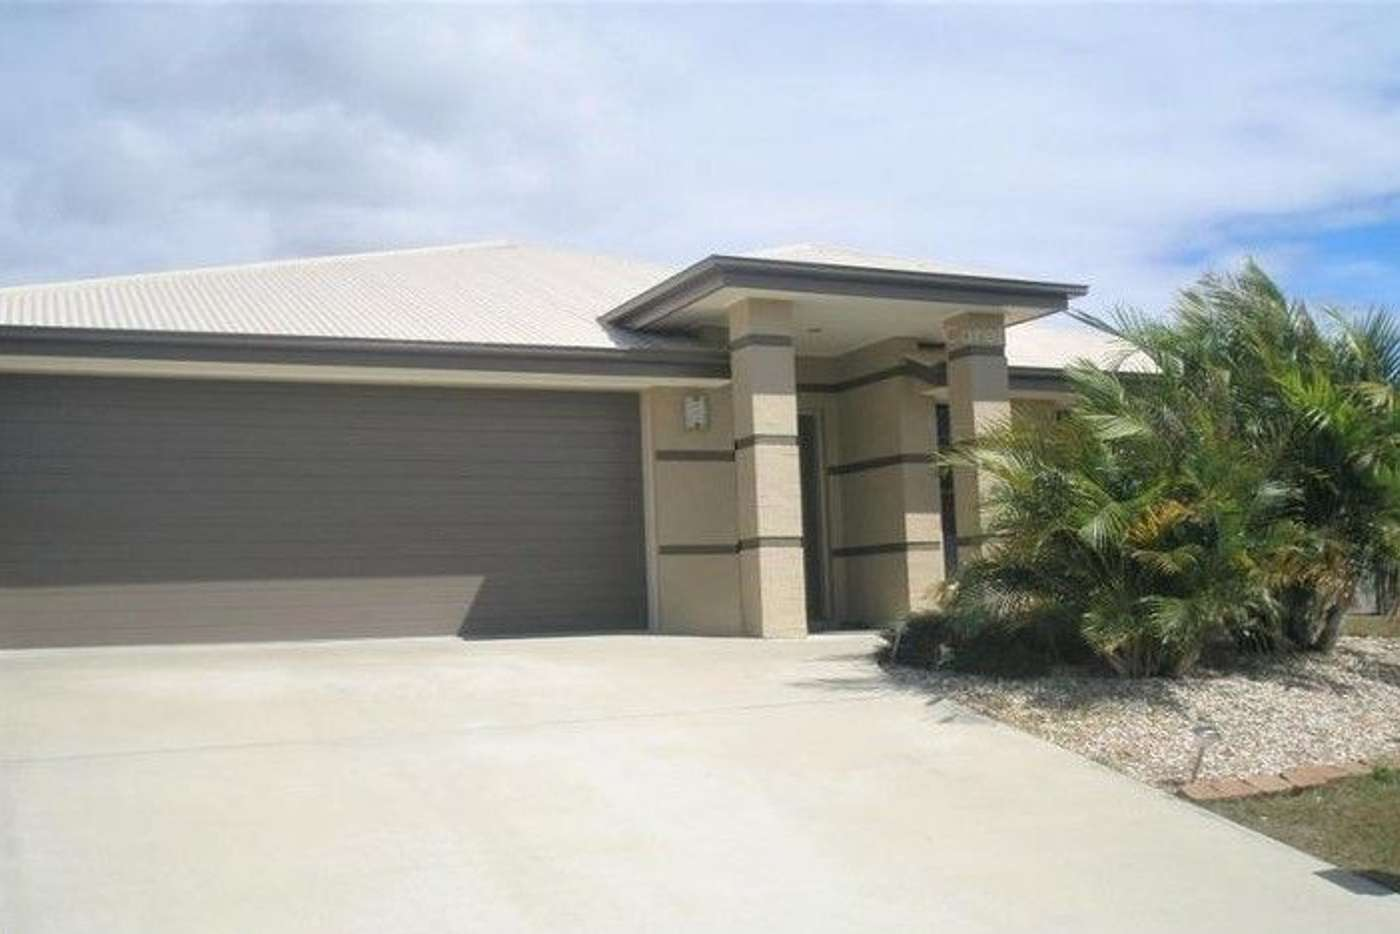 Main view of Homely house listing, 27 Serenity Court, Crestmead QLD 4132